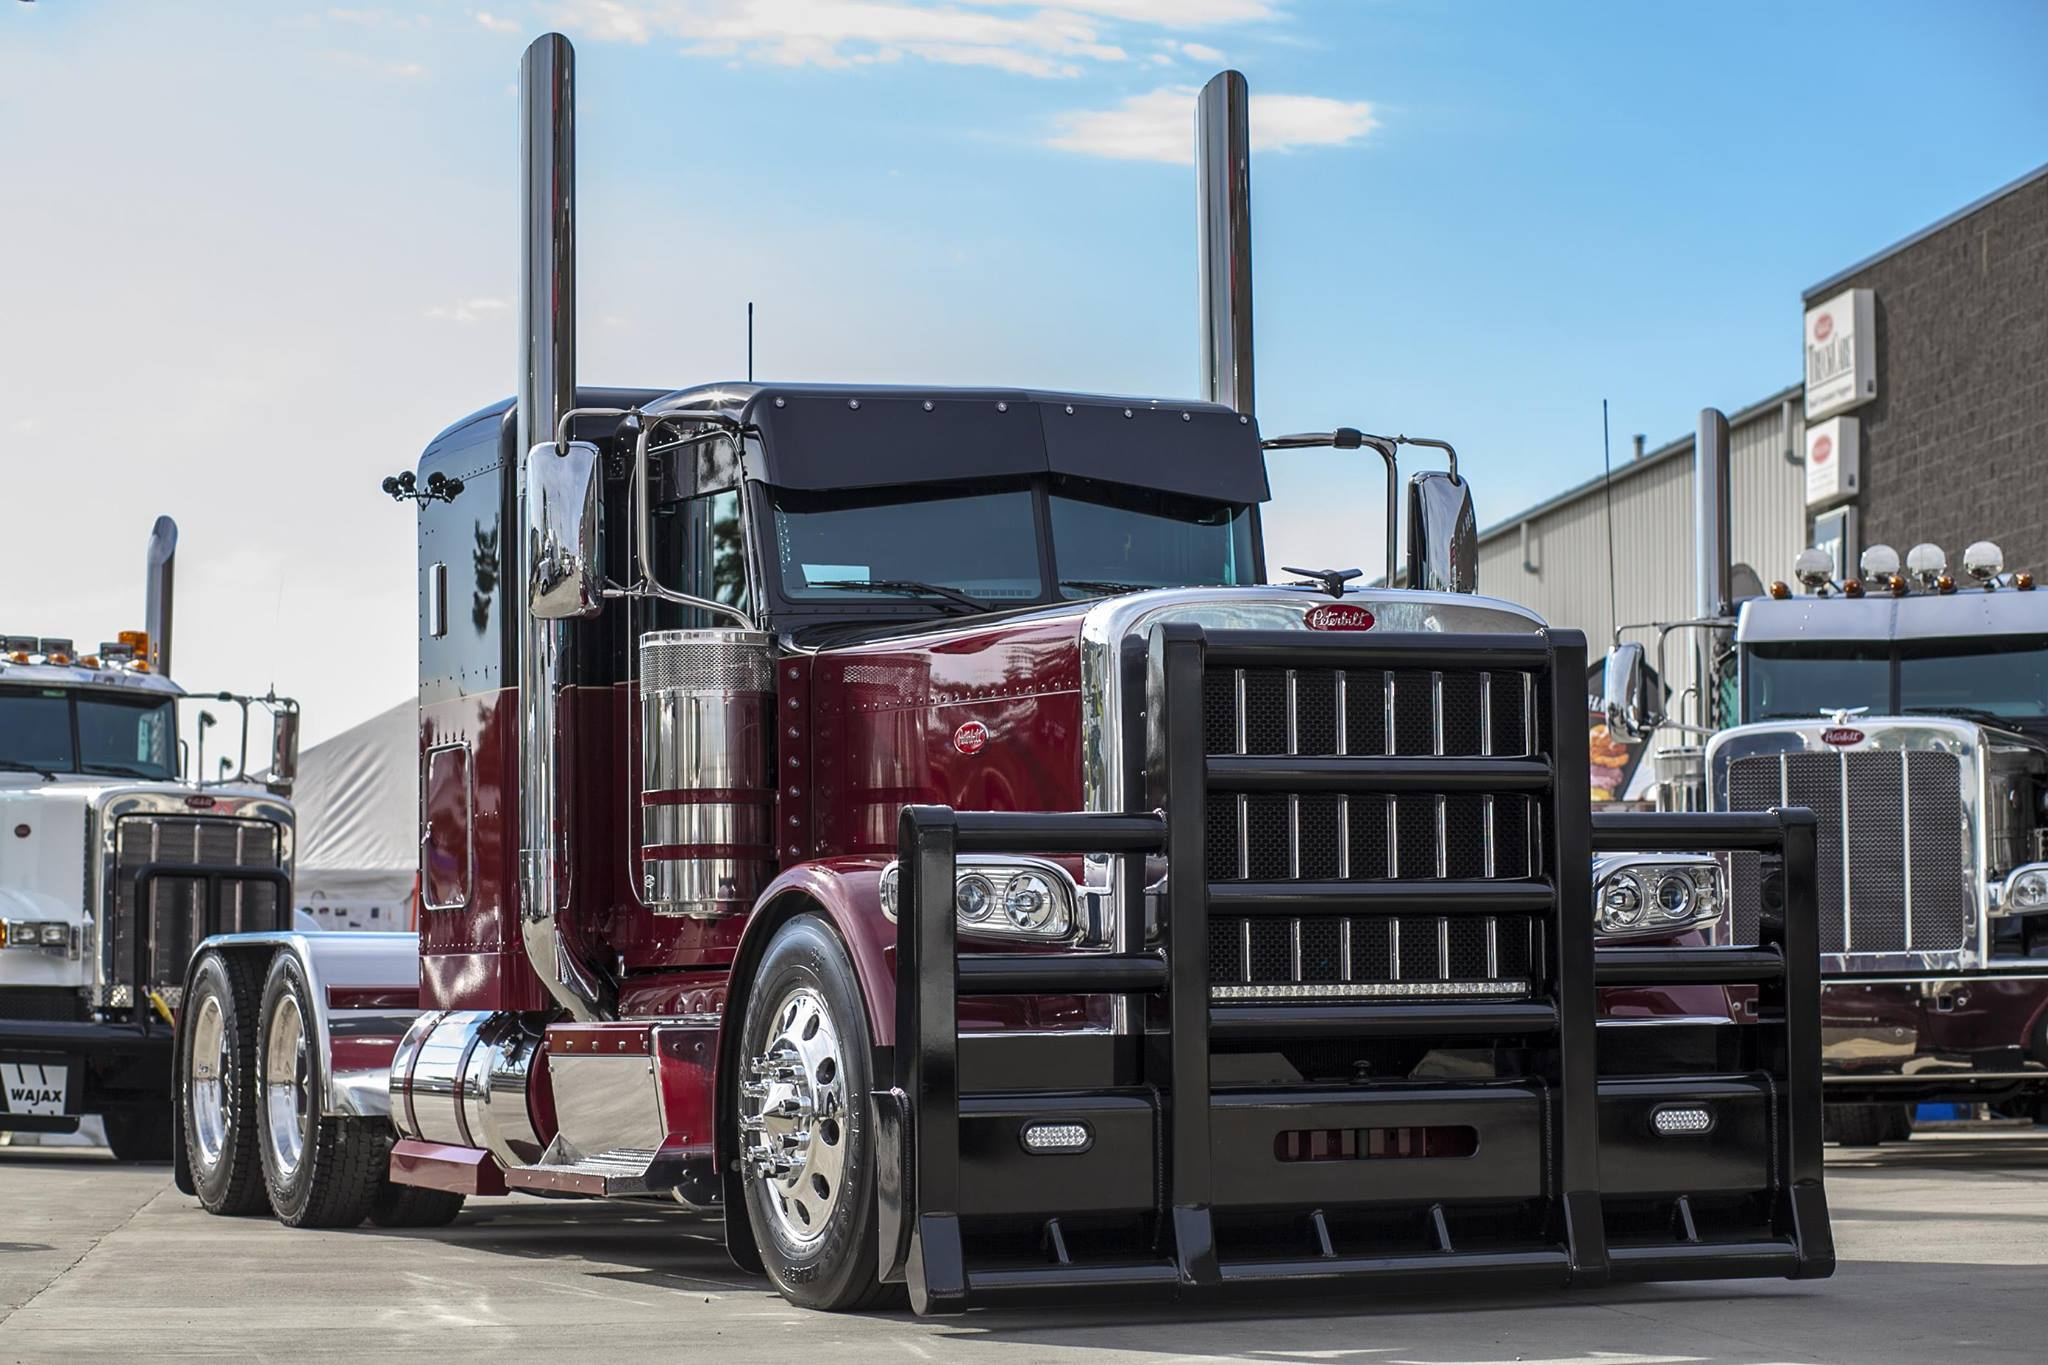 Peterbilt wallpaper | 2256x1496 | 164167 | WallpaperUP